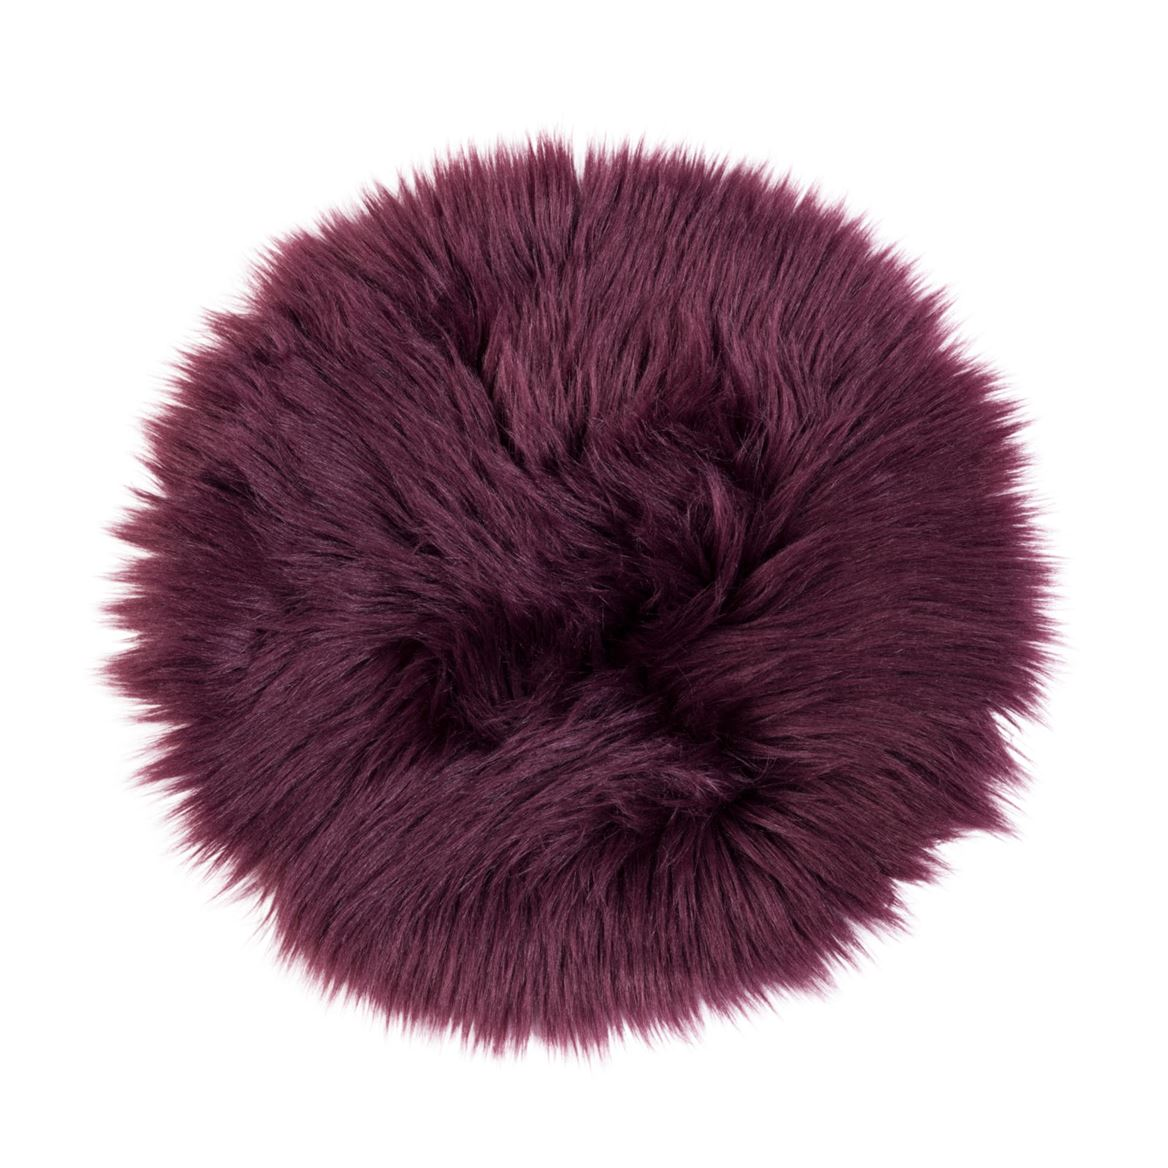 FUR Set de table rouge foncé Ø 32 cm_fur-set-de-table-rouge-foncé-ø-32-cm